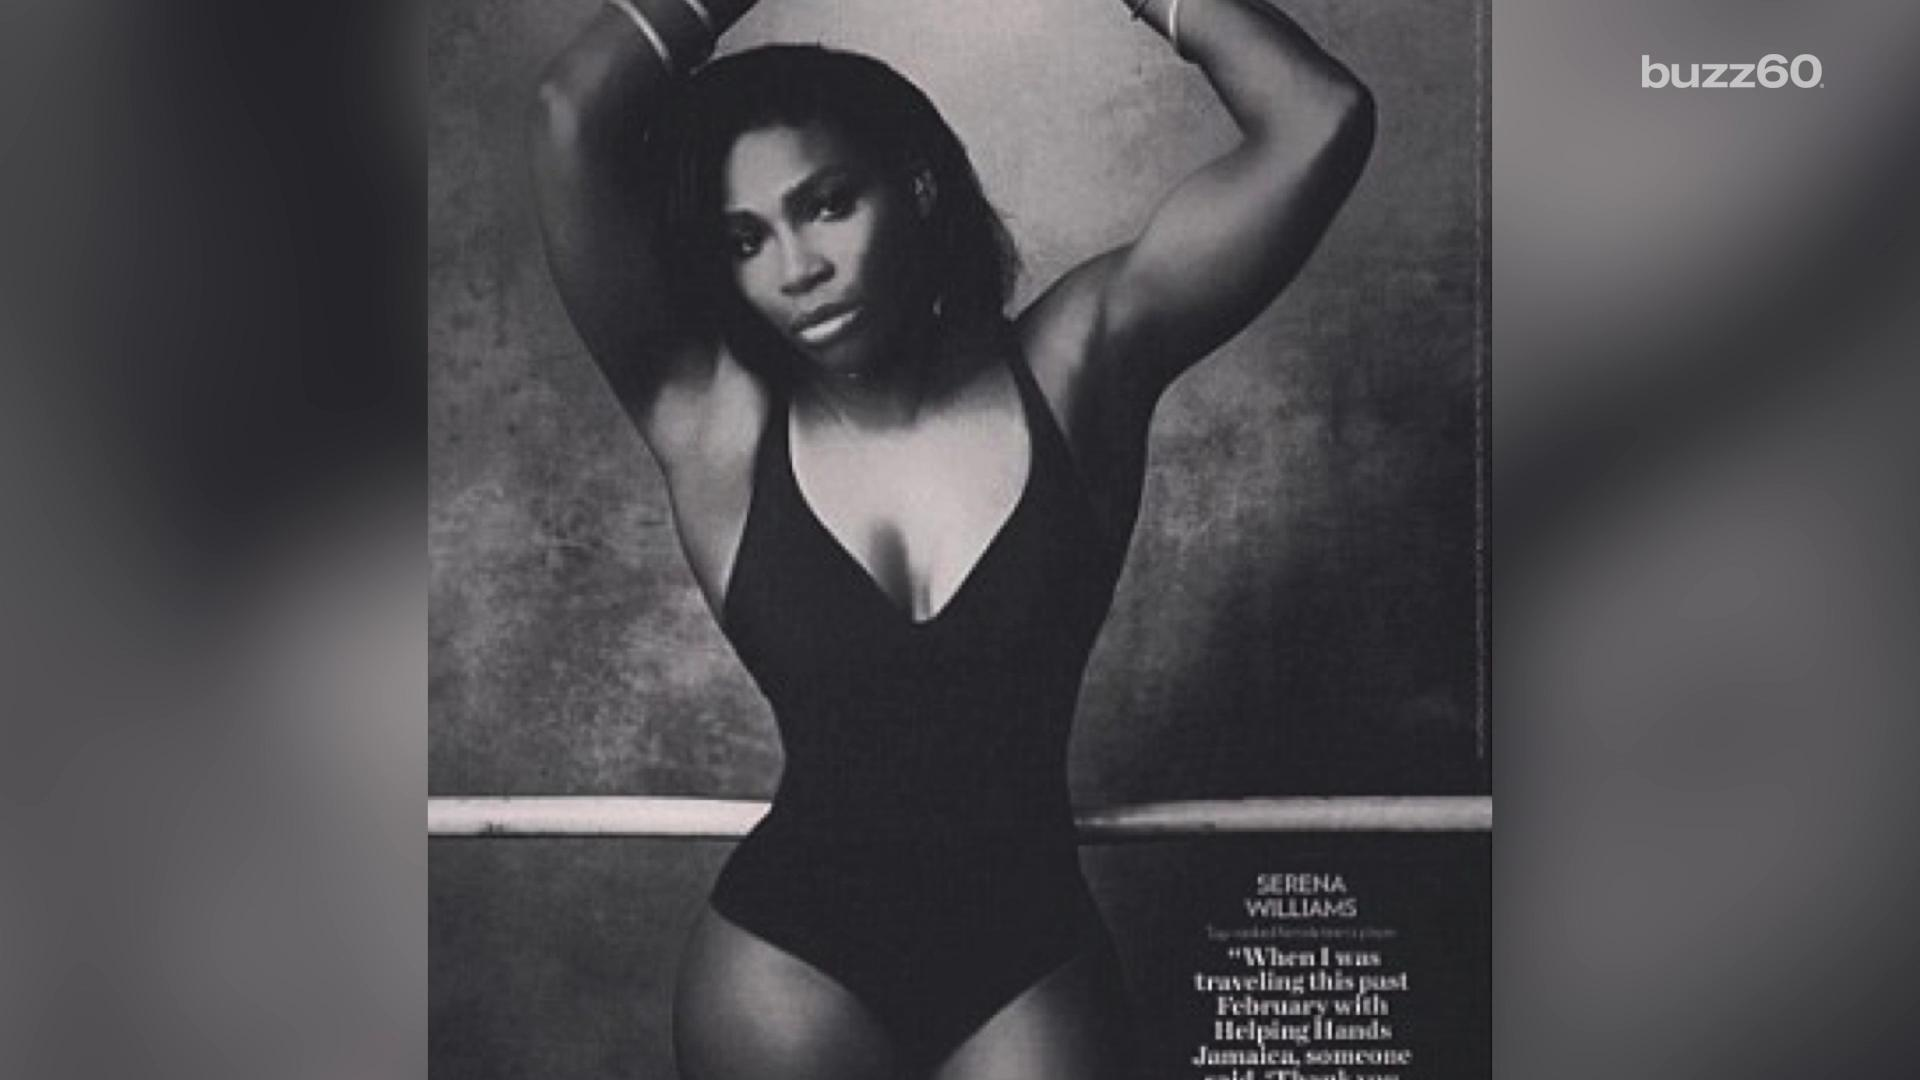 Serena Williams Deletes Retouched Instagram Photo After Backlash